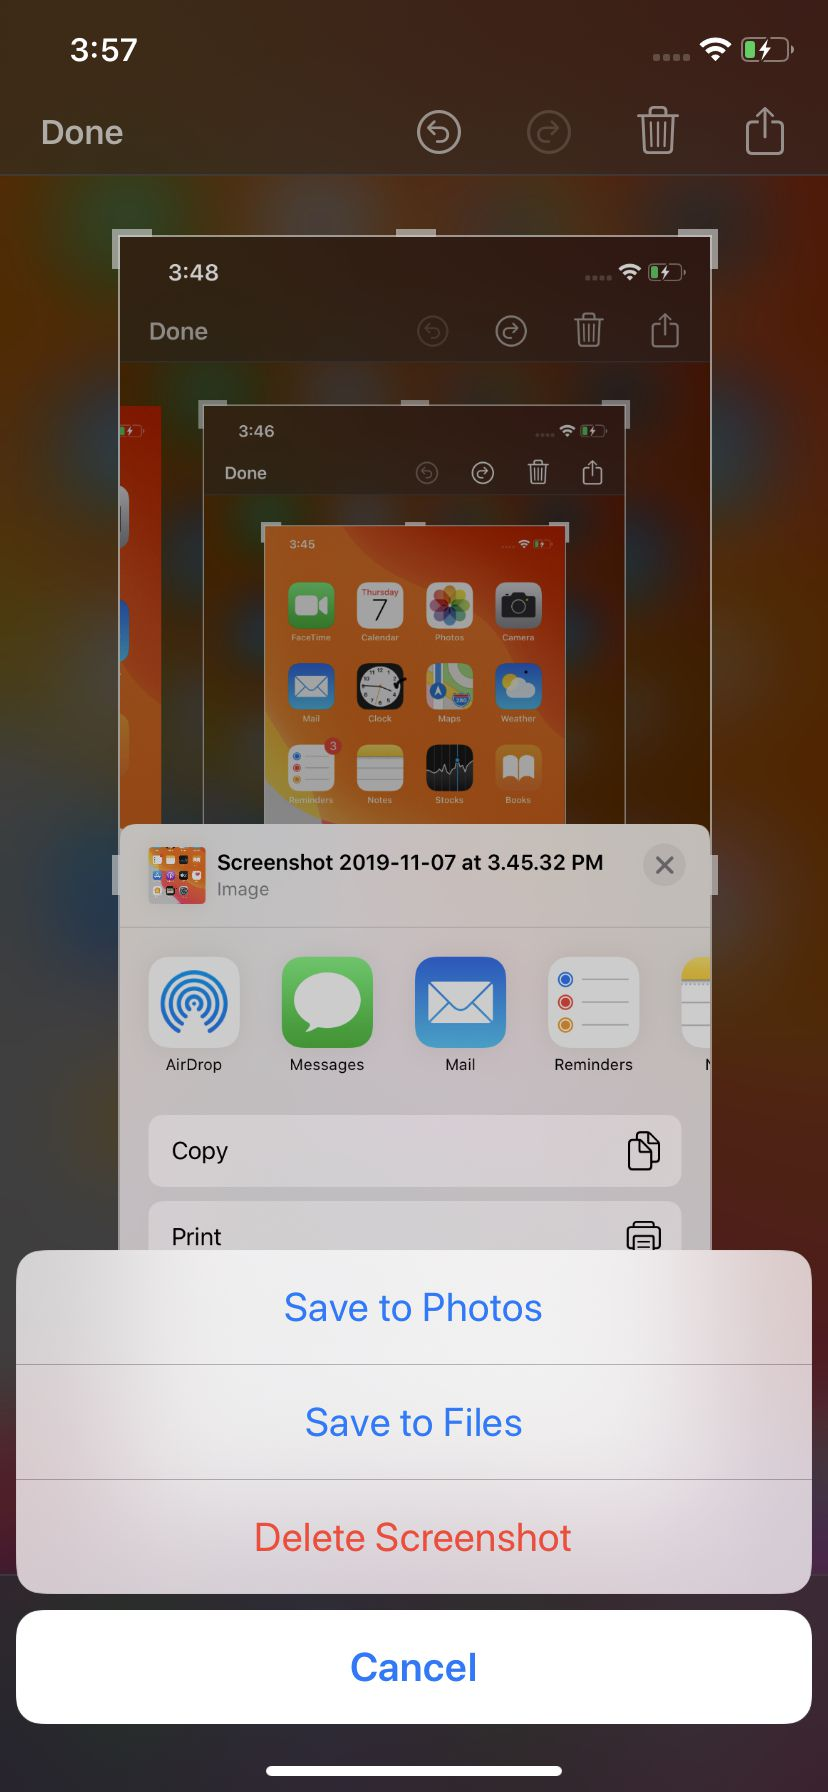 You can save your screenshot to Photos or Files.